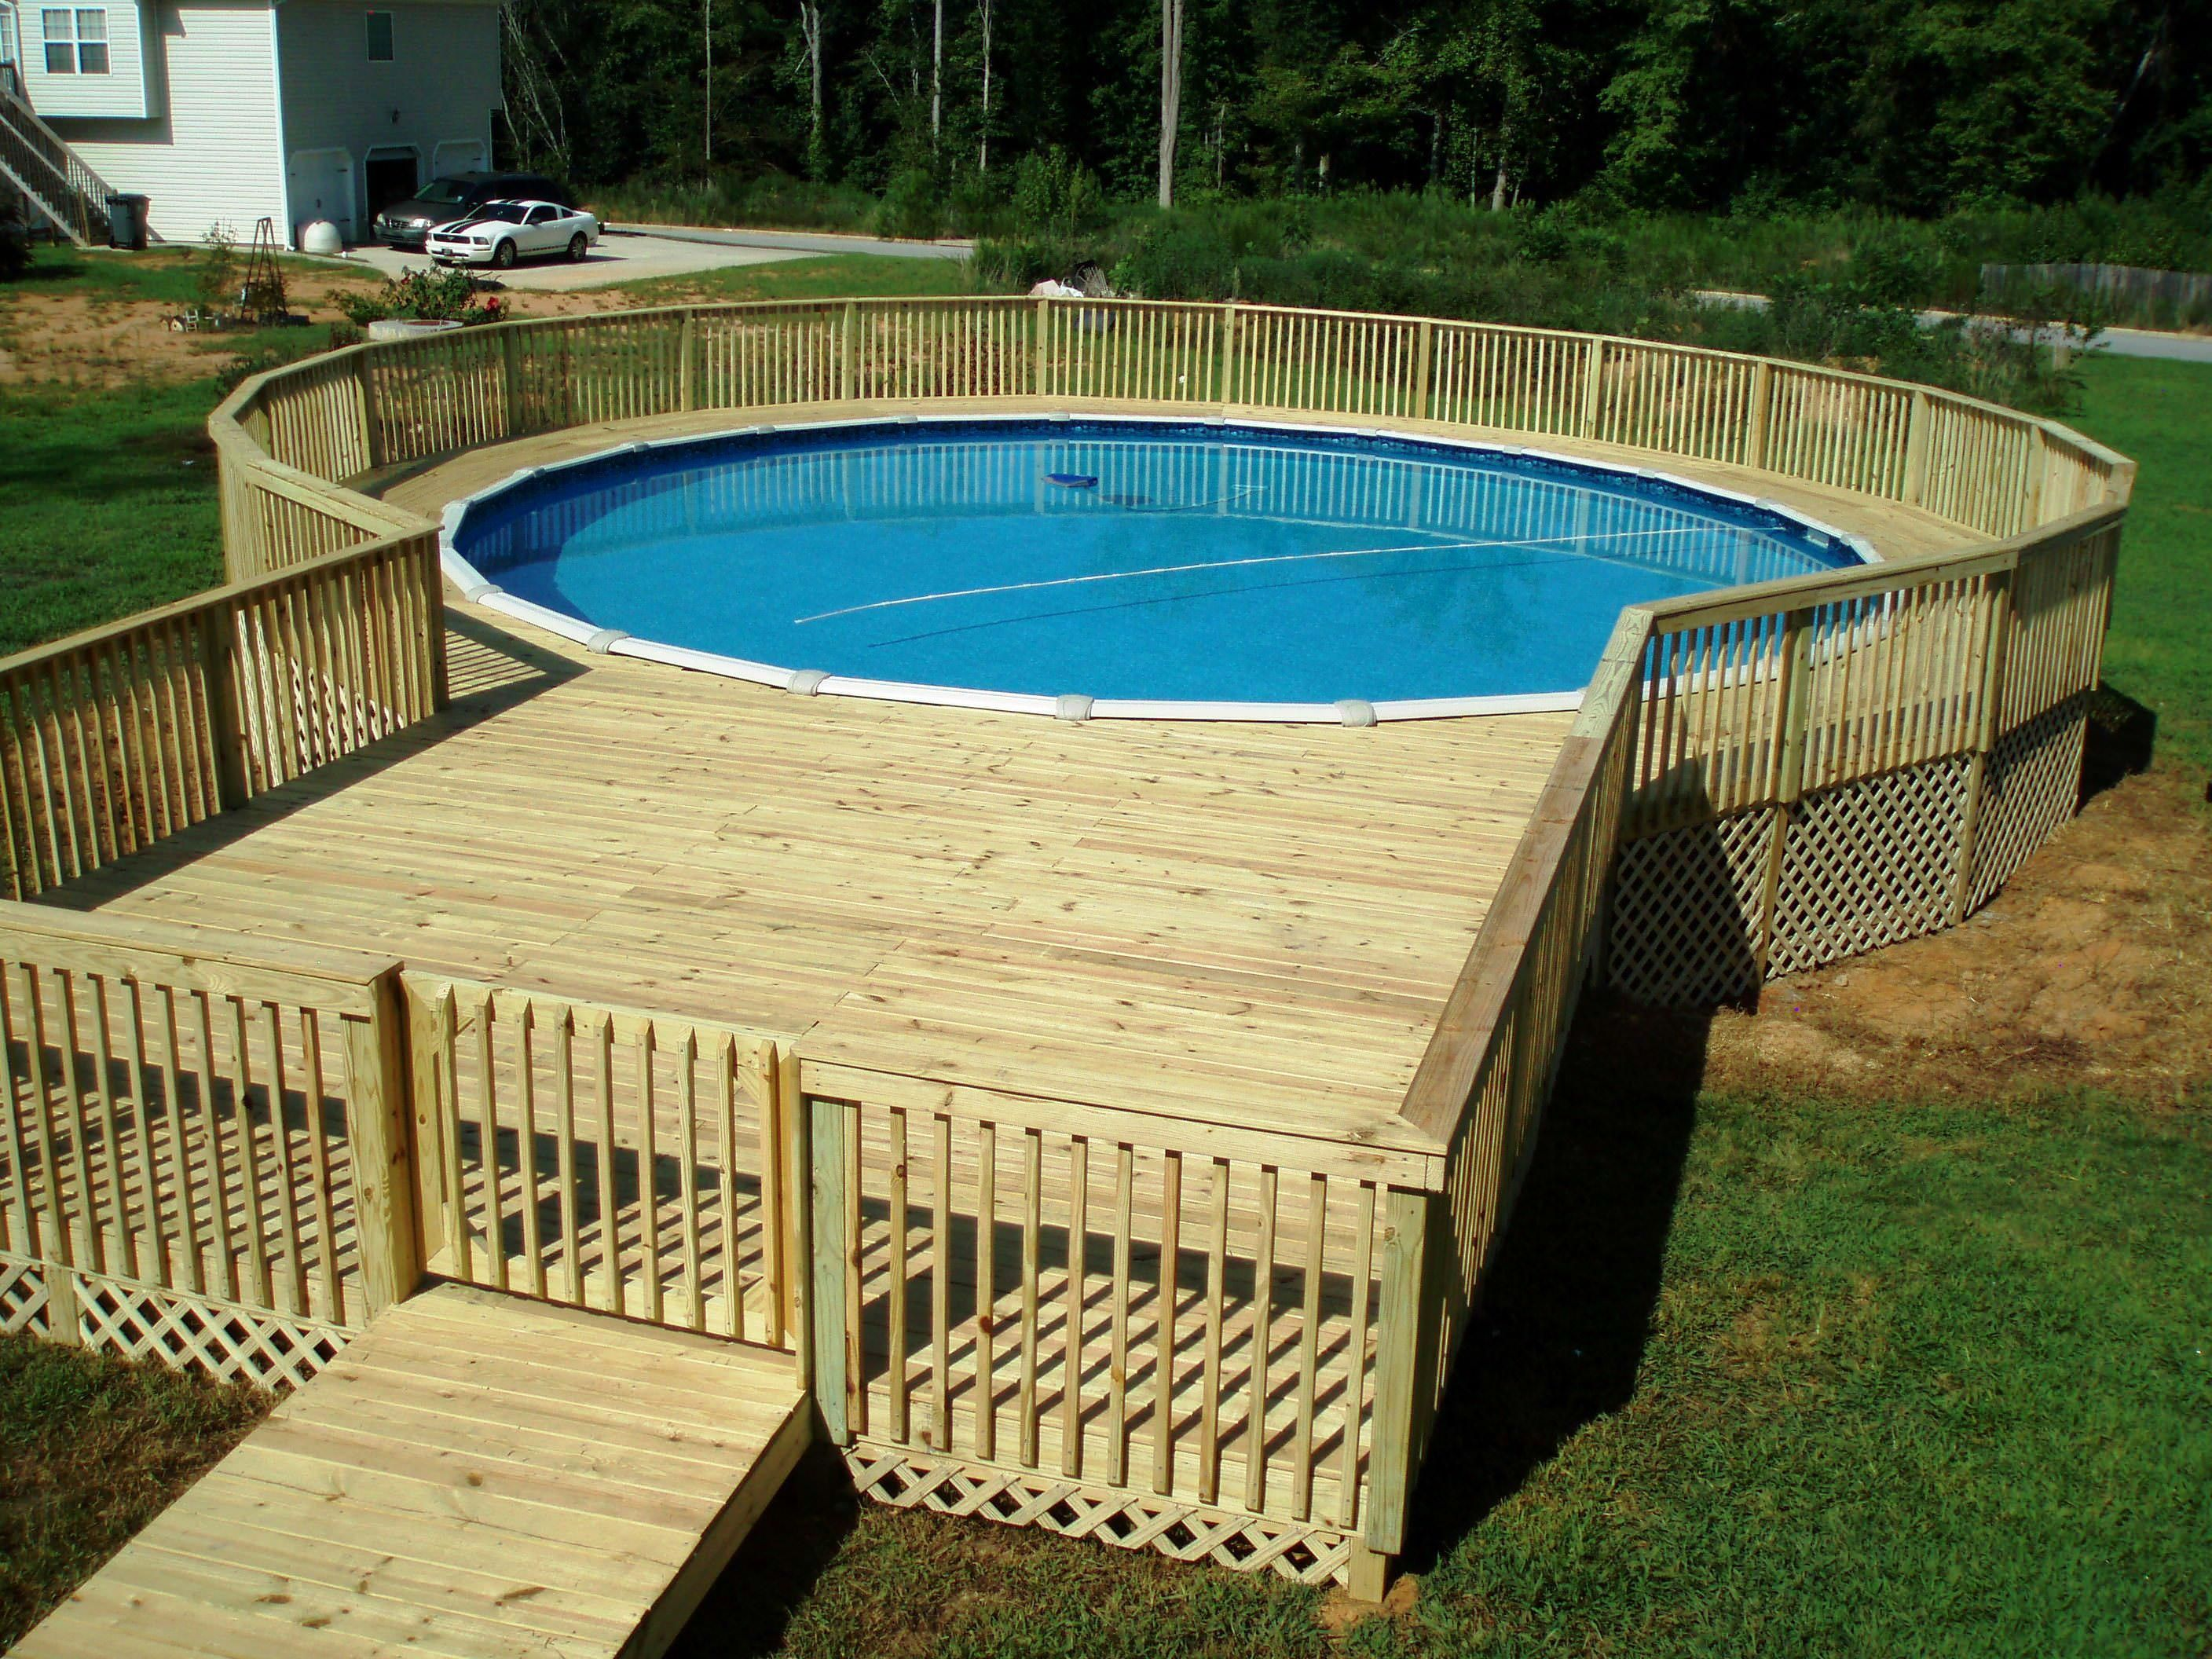 wooden deck ideas for above ground pool | Wooden Decks Around Above Ground Pools | Your Decking ...